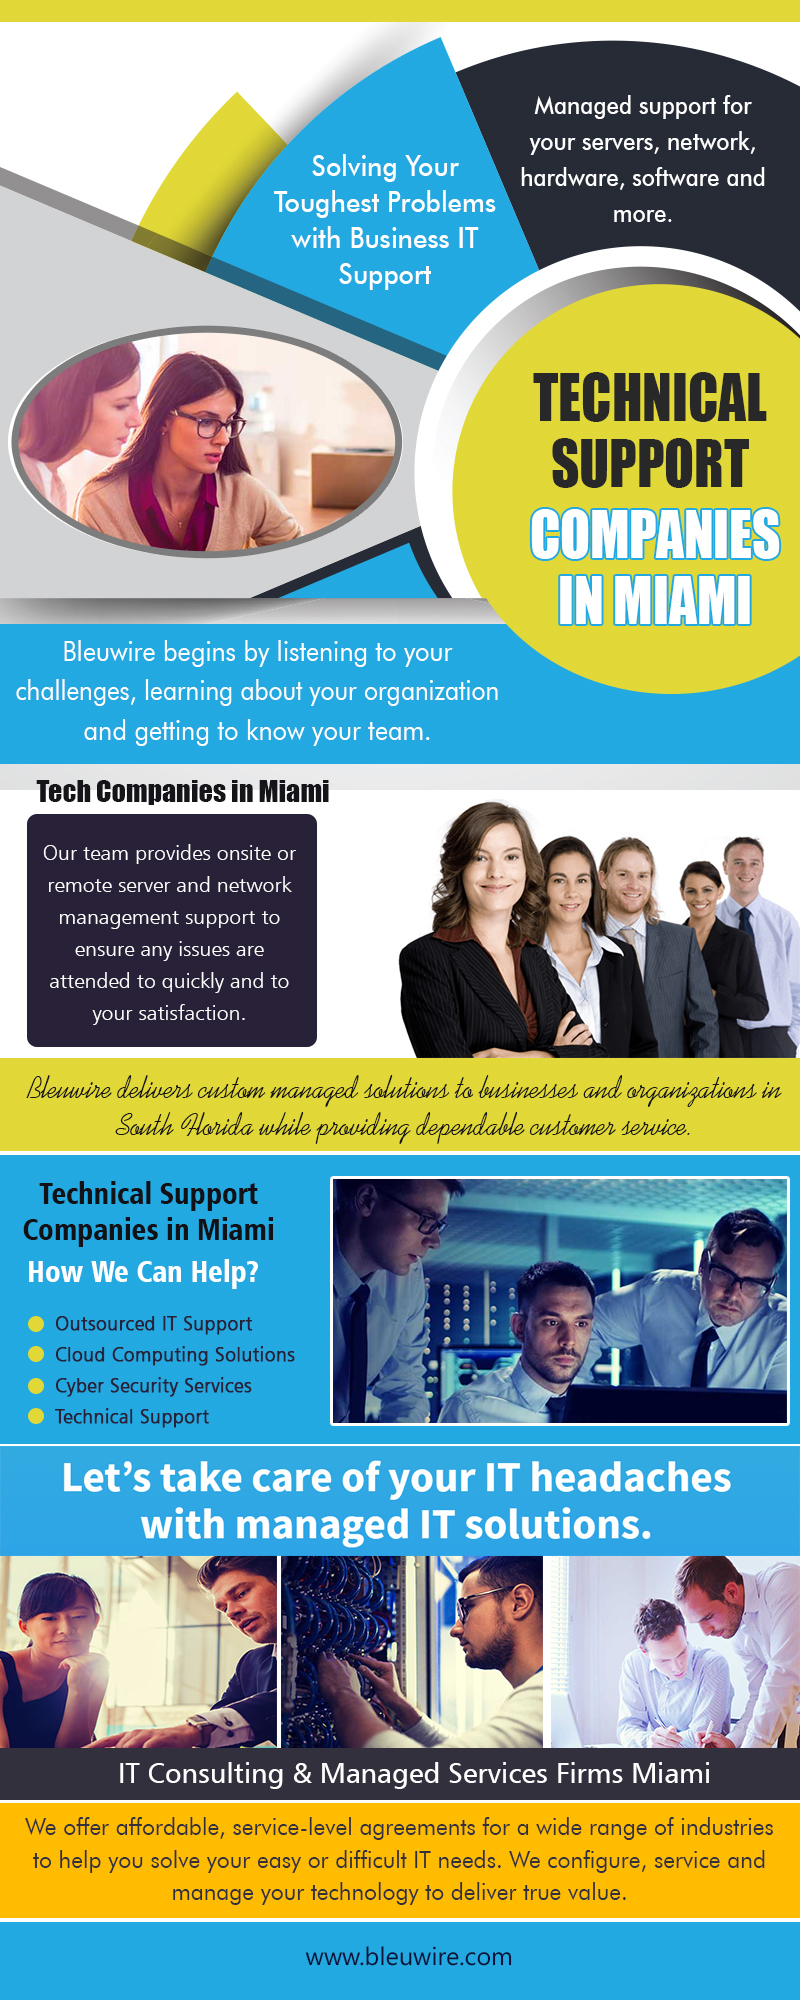 Technical Support Companies in Miami